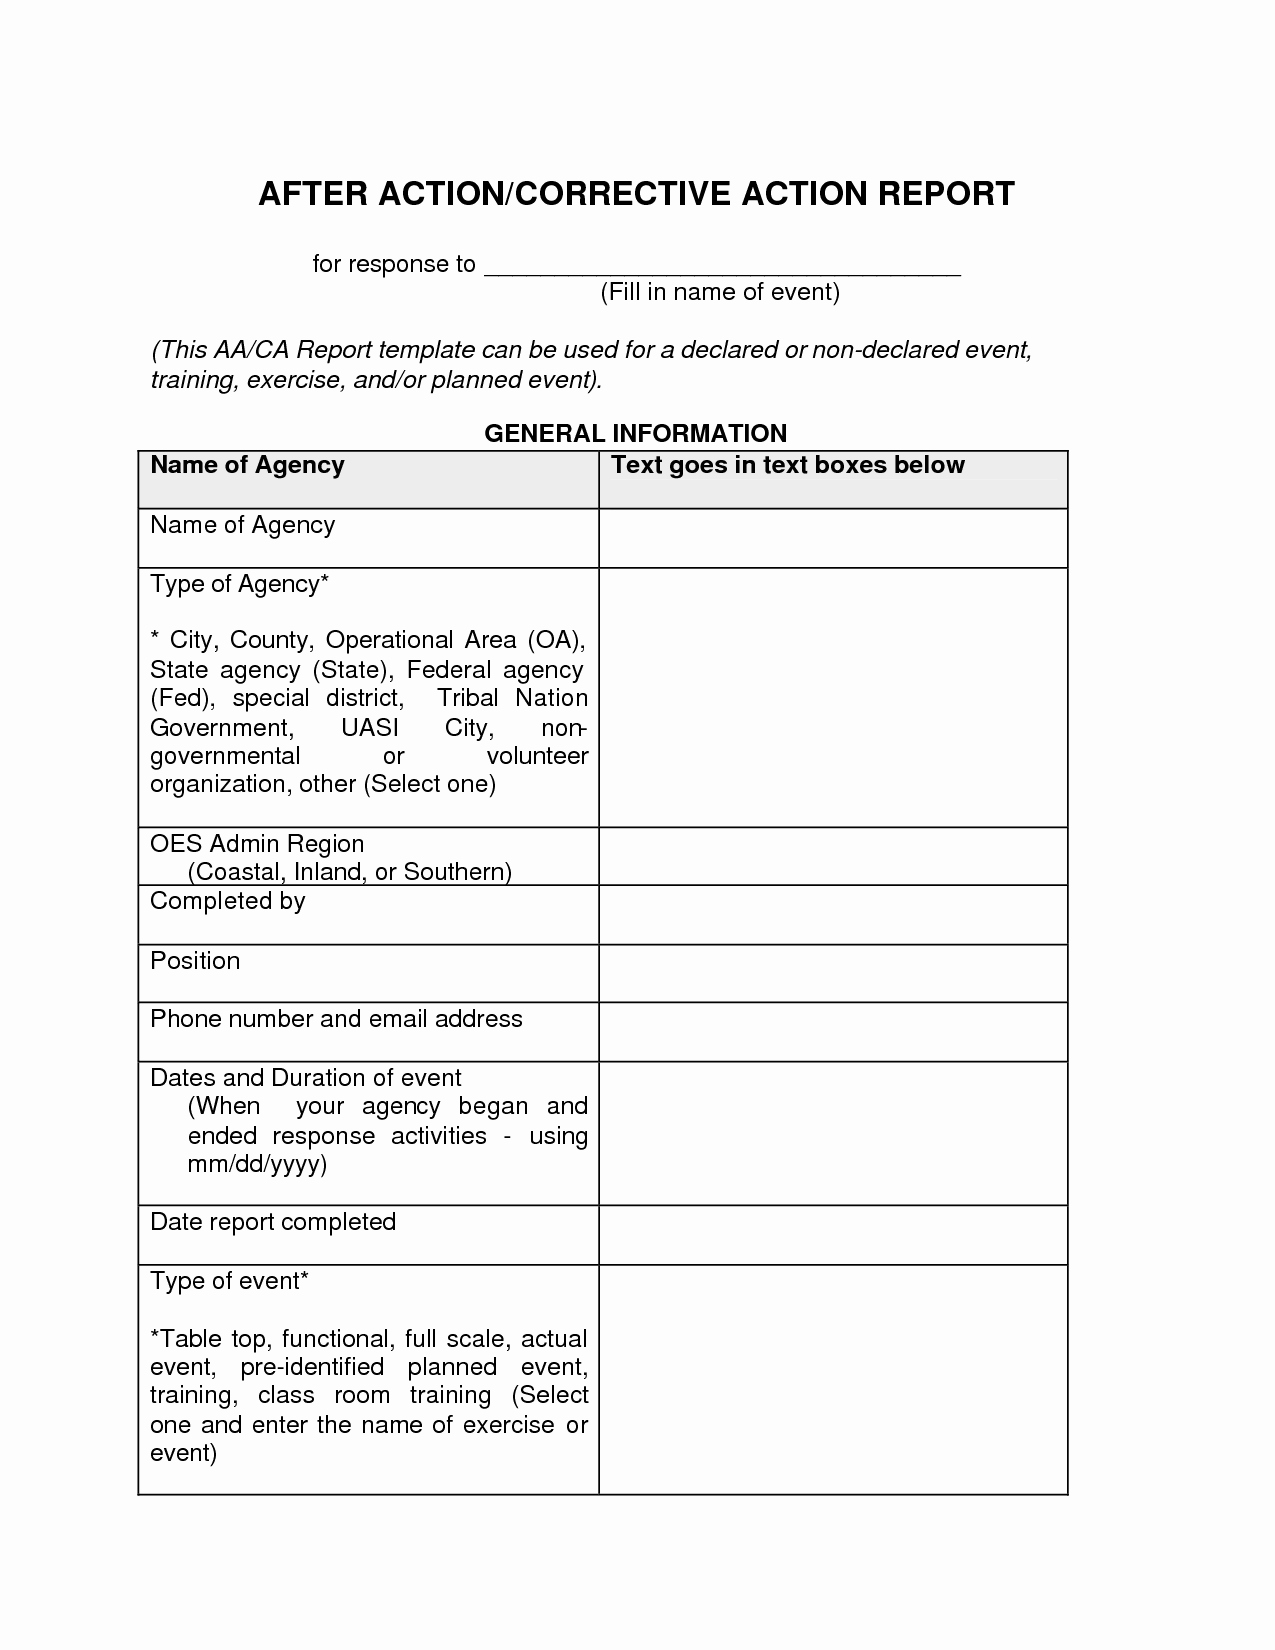 8d corrective action report template excel